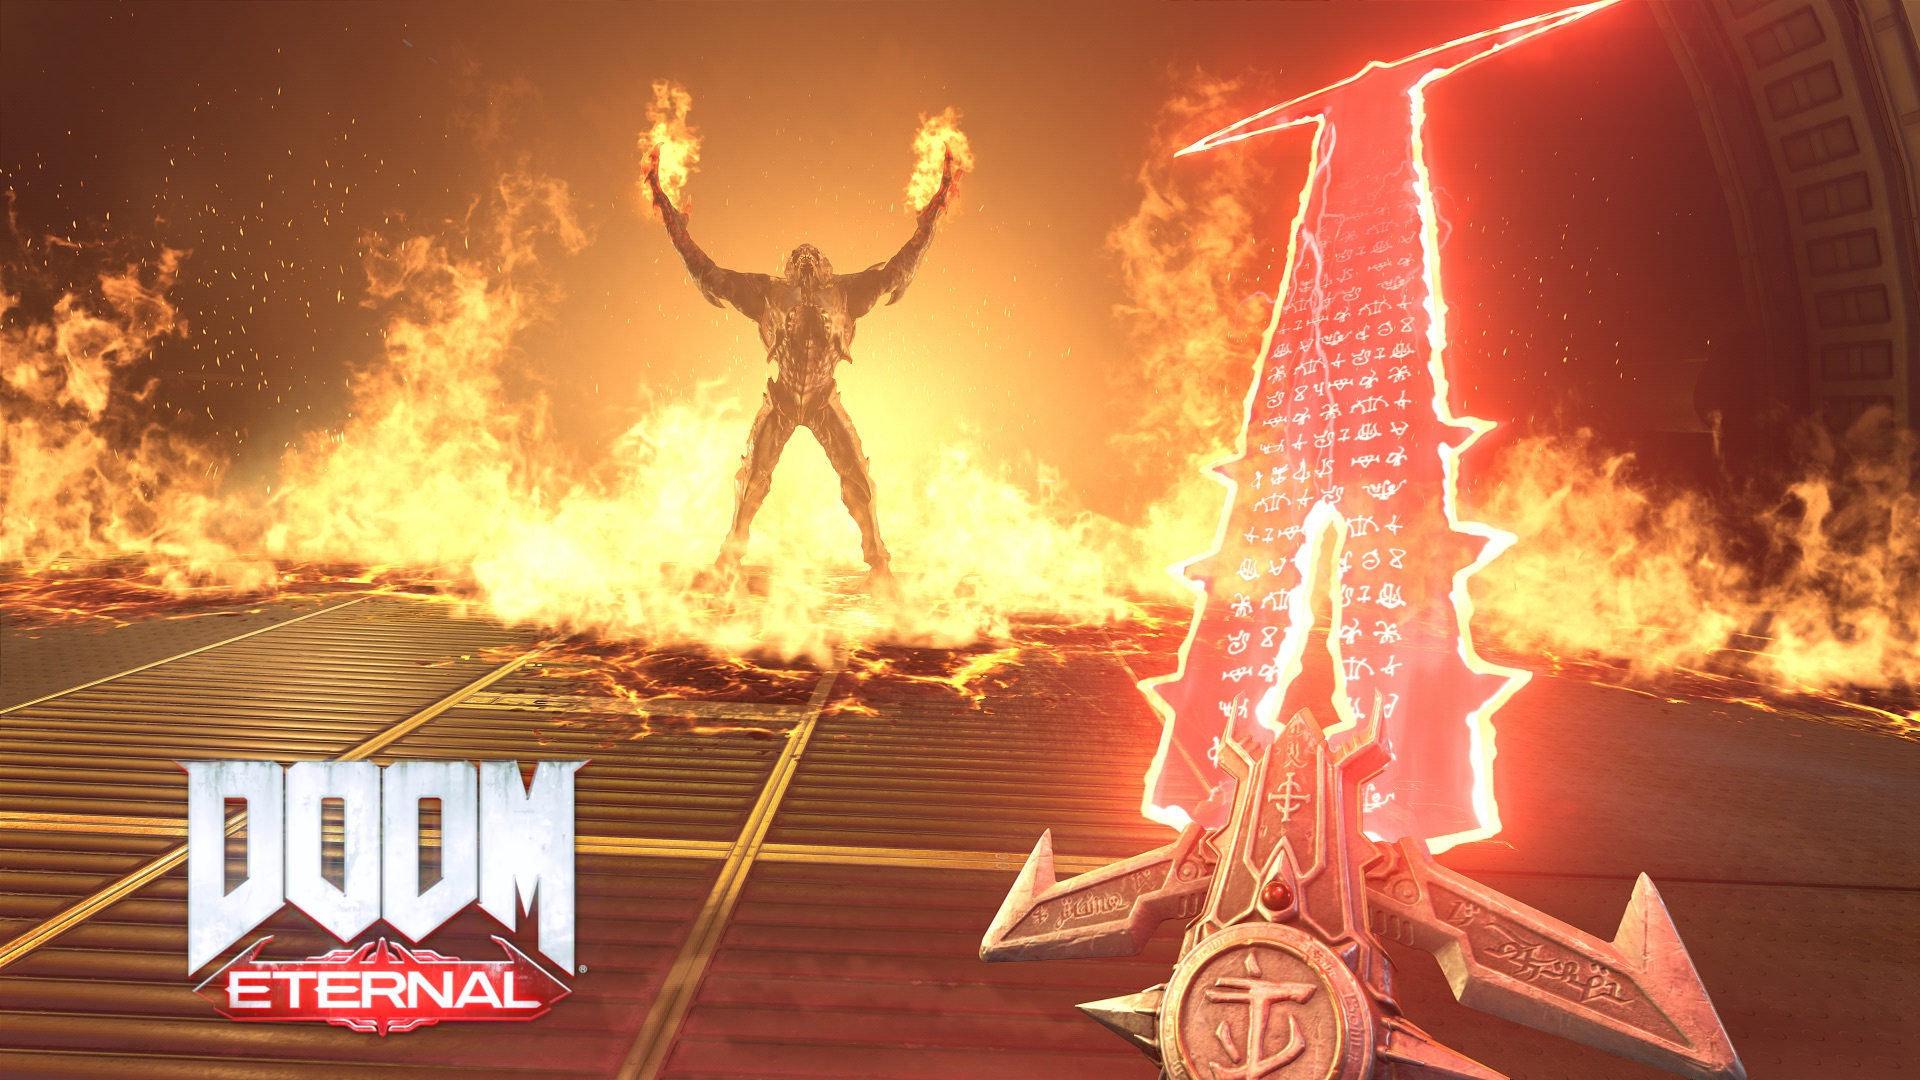 Doom Eternal Wallpaper 1440 Cheap Diazepam43